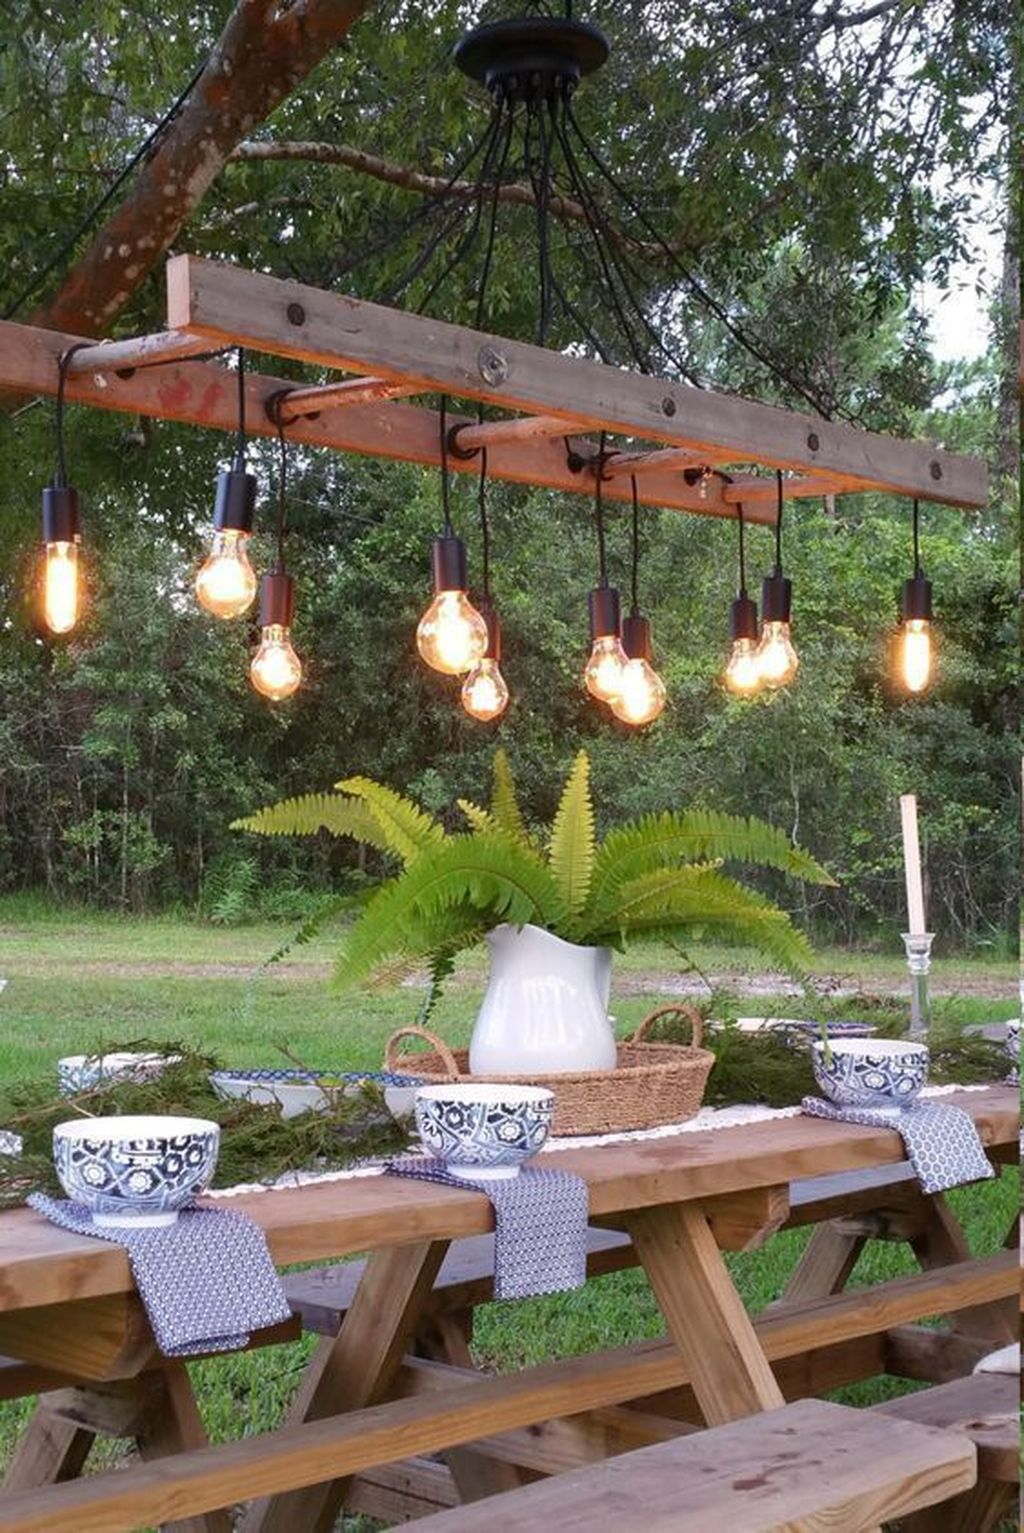 Inspiring Garden Lamps Ideas For Outdoors Decor 03